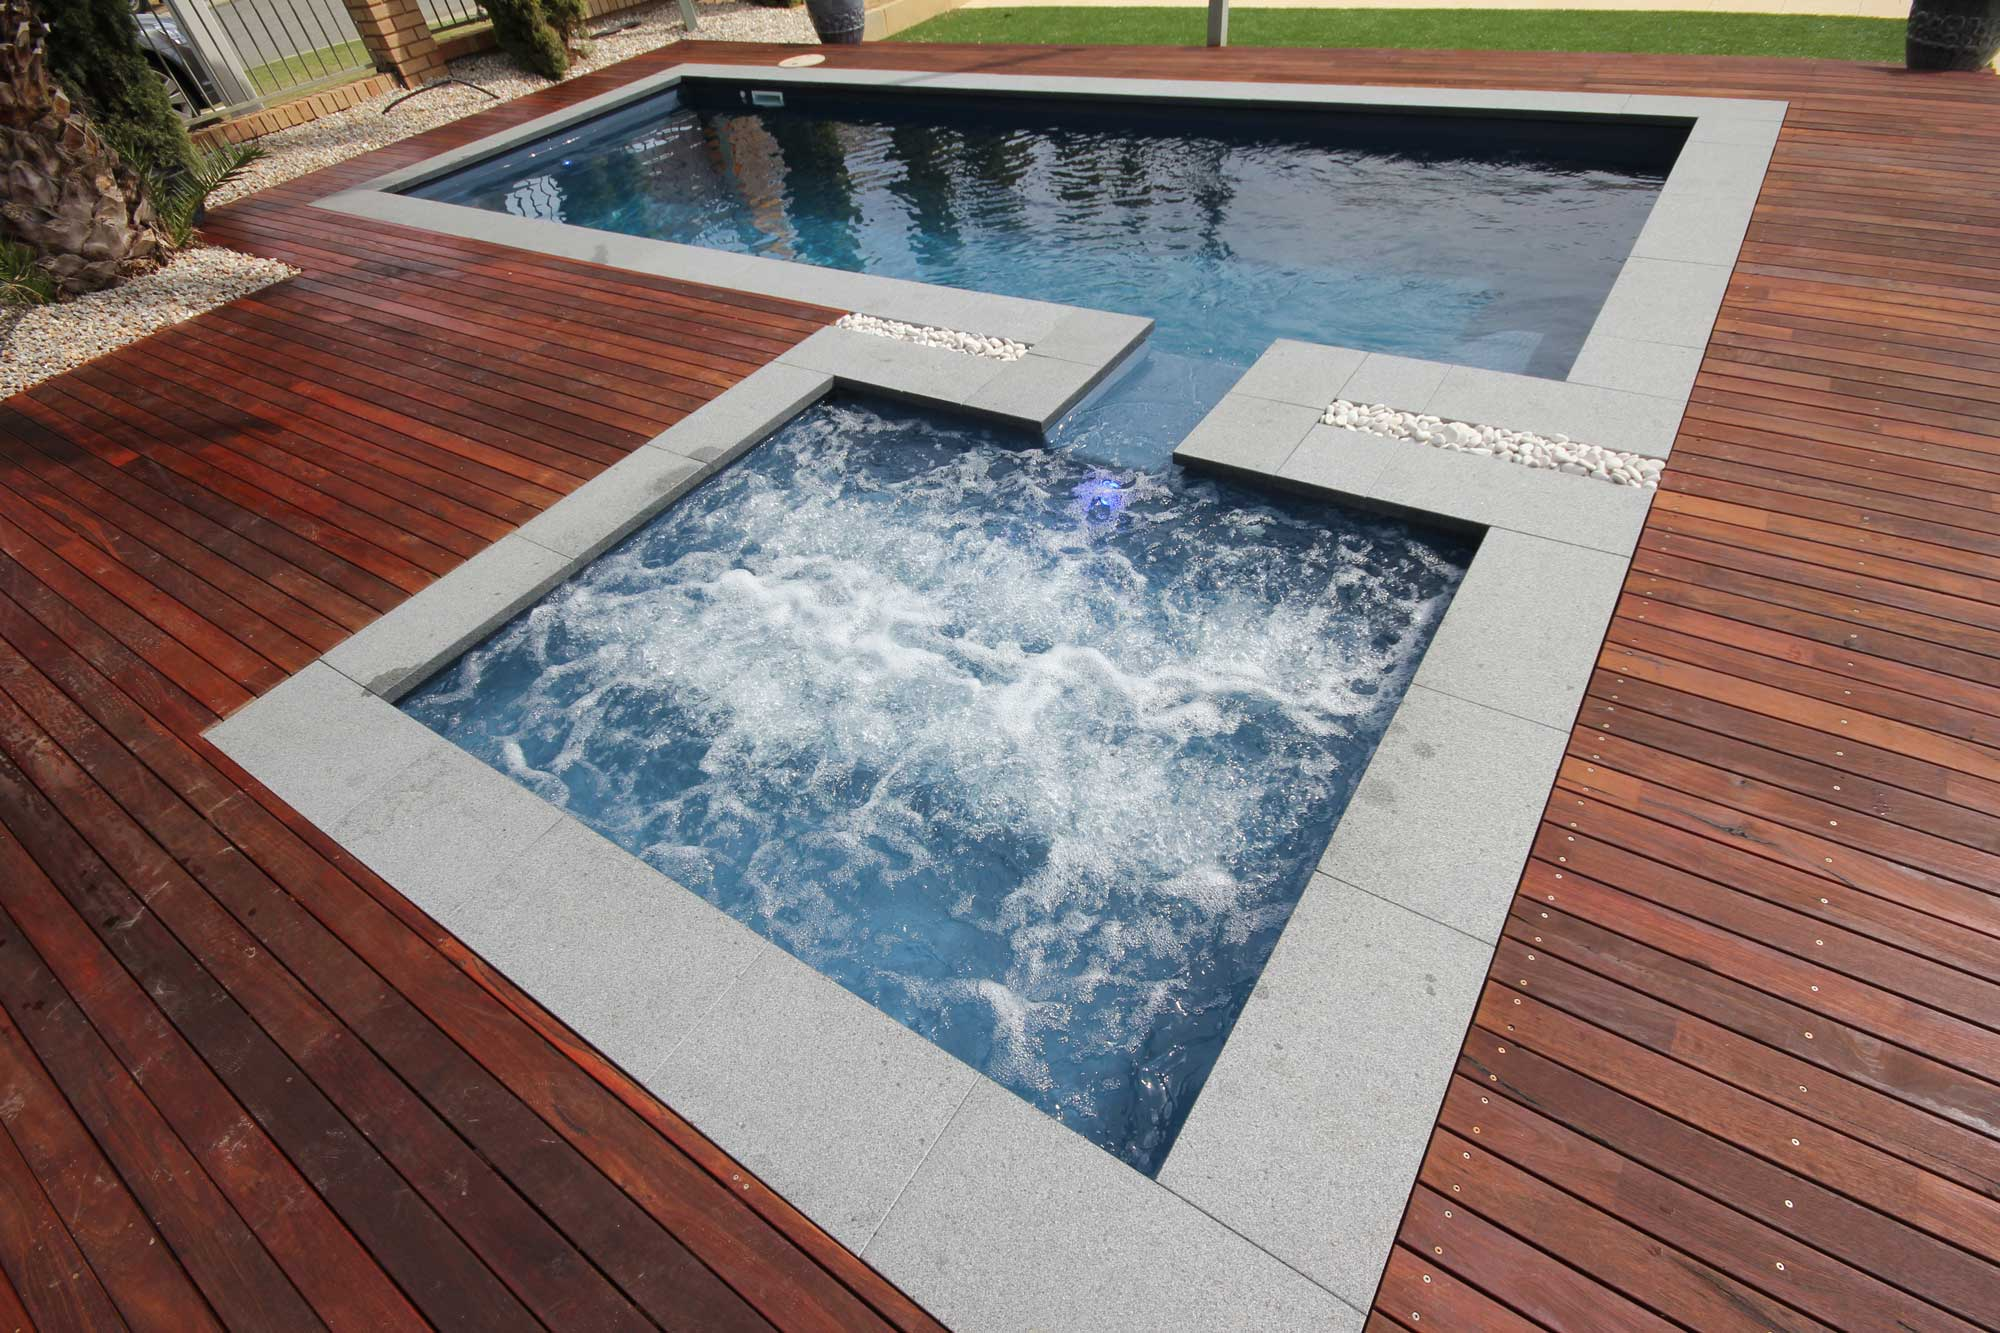 Large Fiberglass Pool Canberra